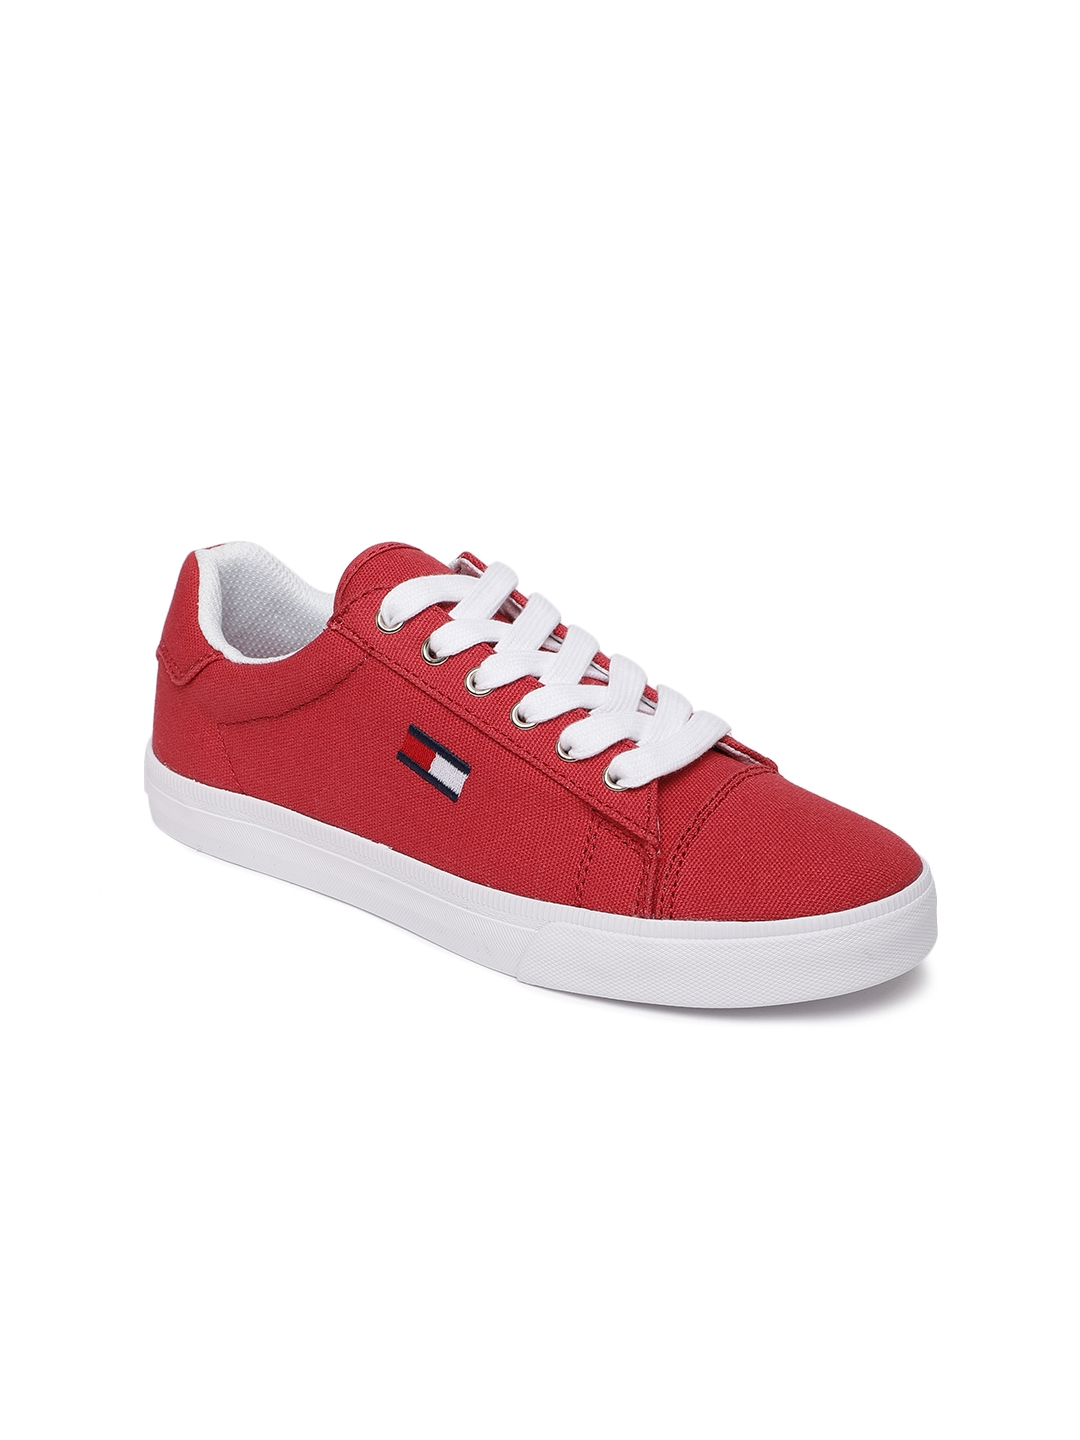 e61de88e2 Buy Tommy Hilfiger Women Red Lava A Sneakers - Casual Shoes for ...